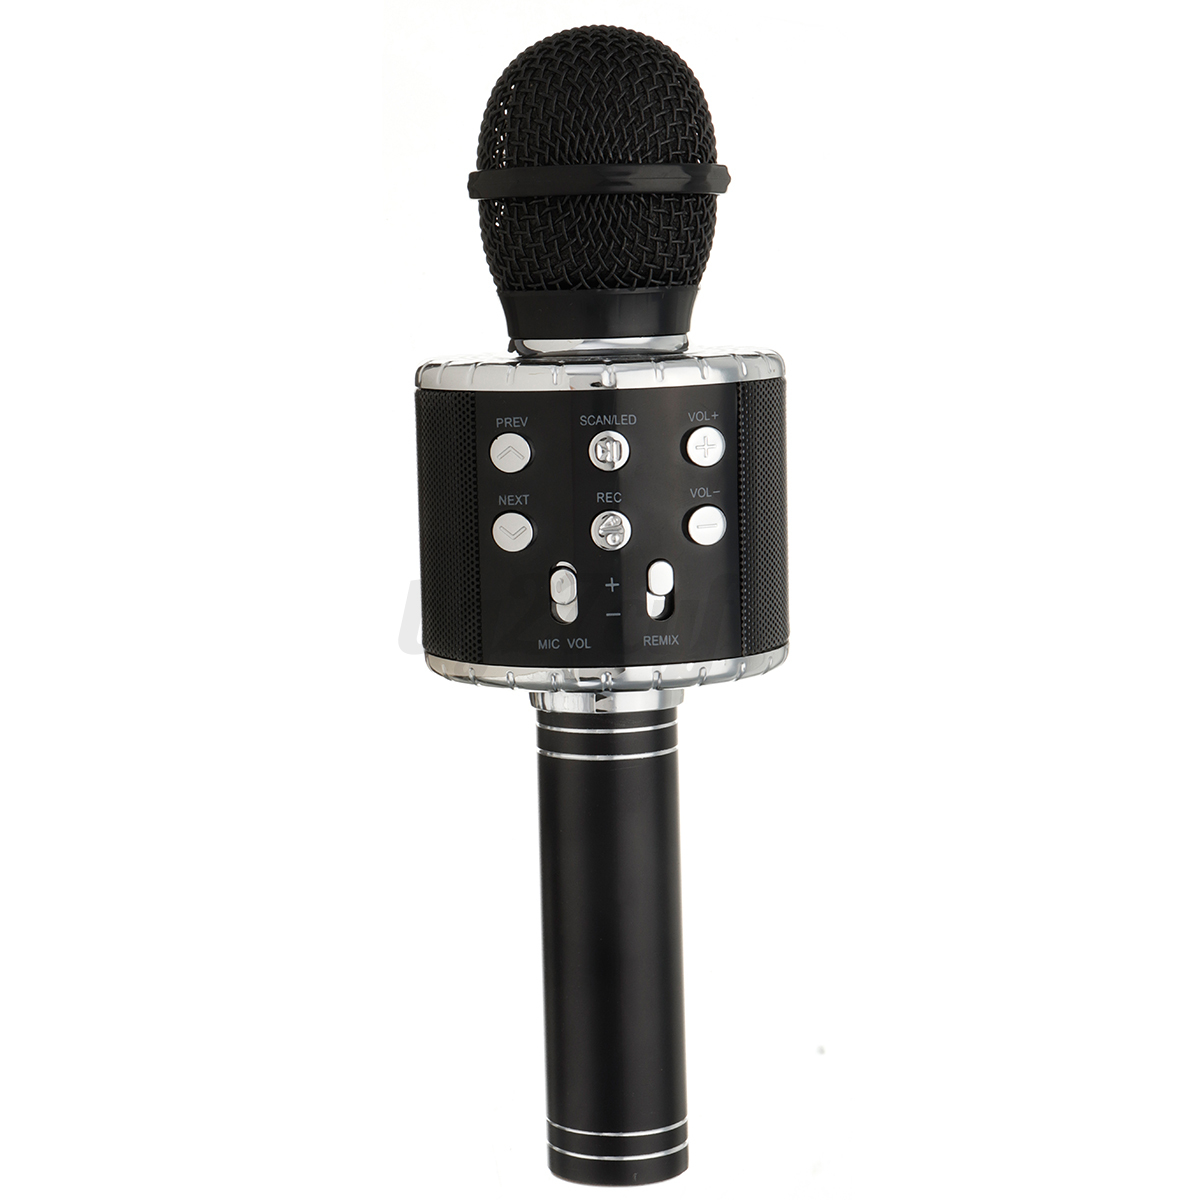 Wireless-Handheld-Microphone-bluetooth-KTV-Karaoke-Stereo-Player-For-iPhone-iPad thumbnail 15